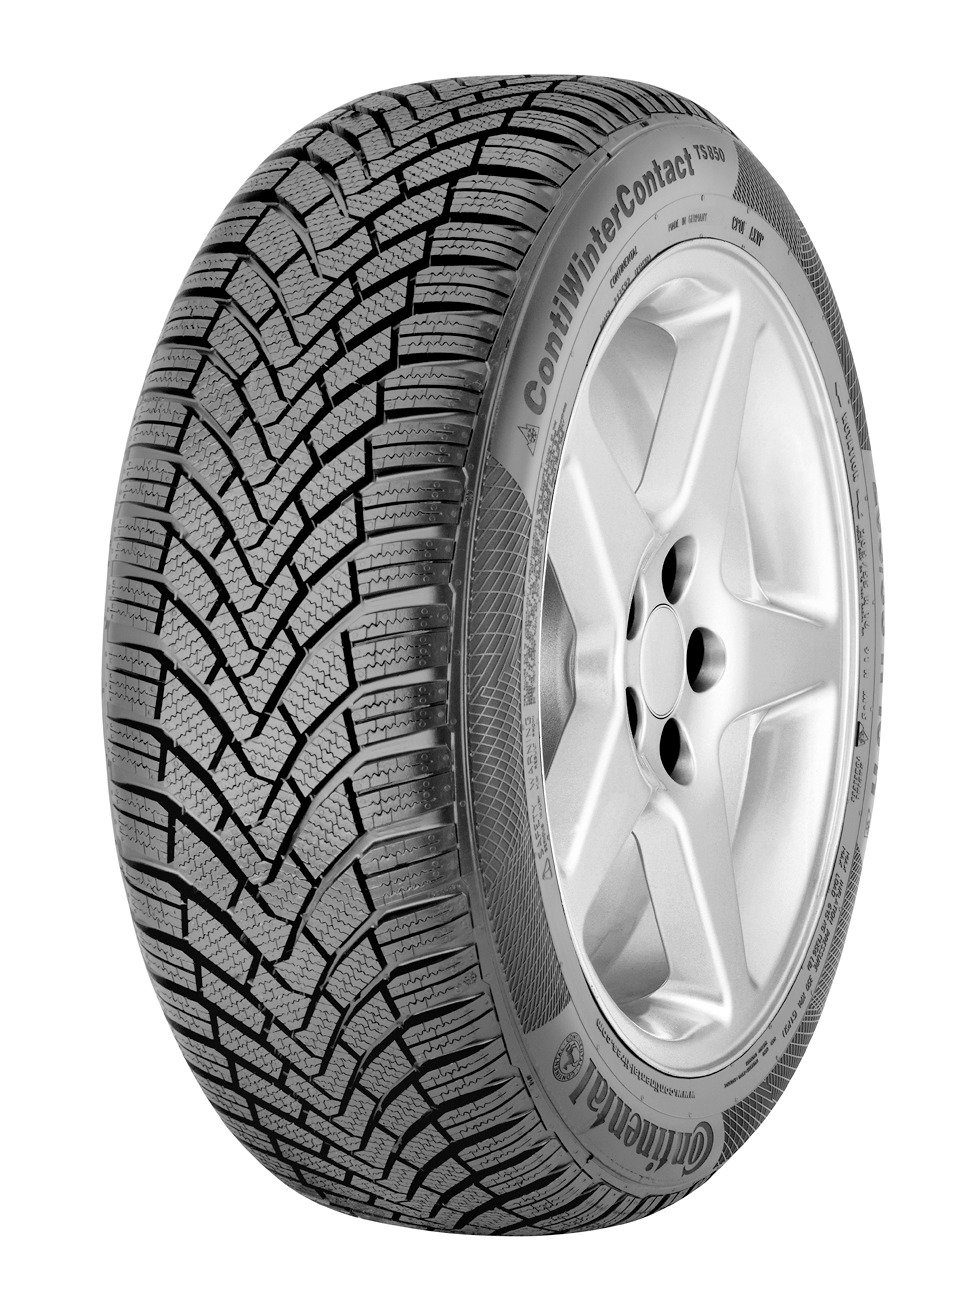 Continental Winterreifen »Continental TS 850, 185mm«